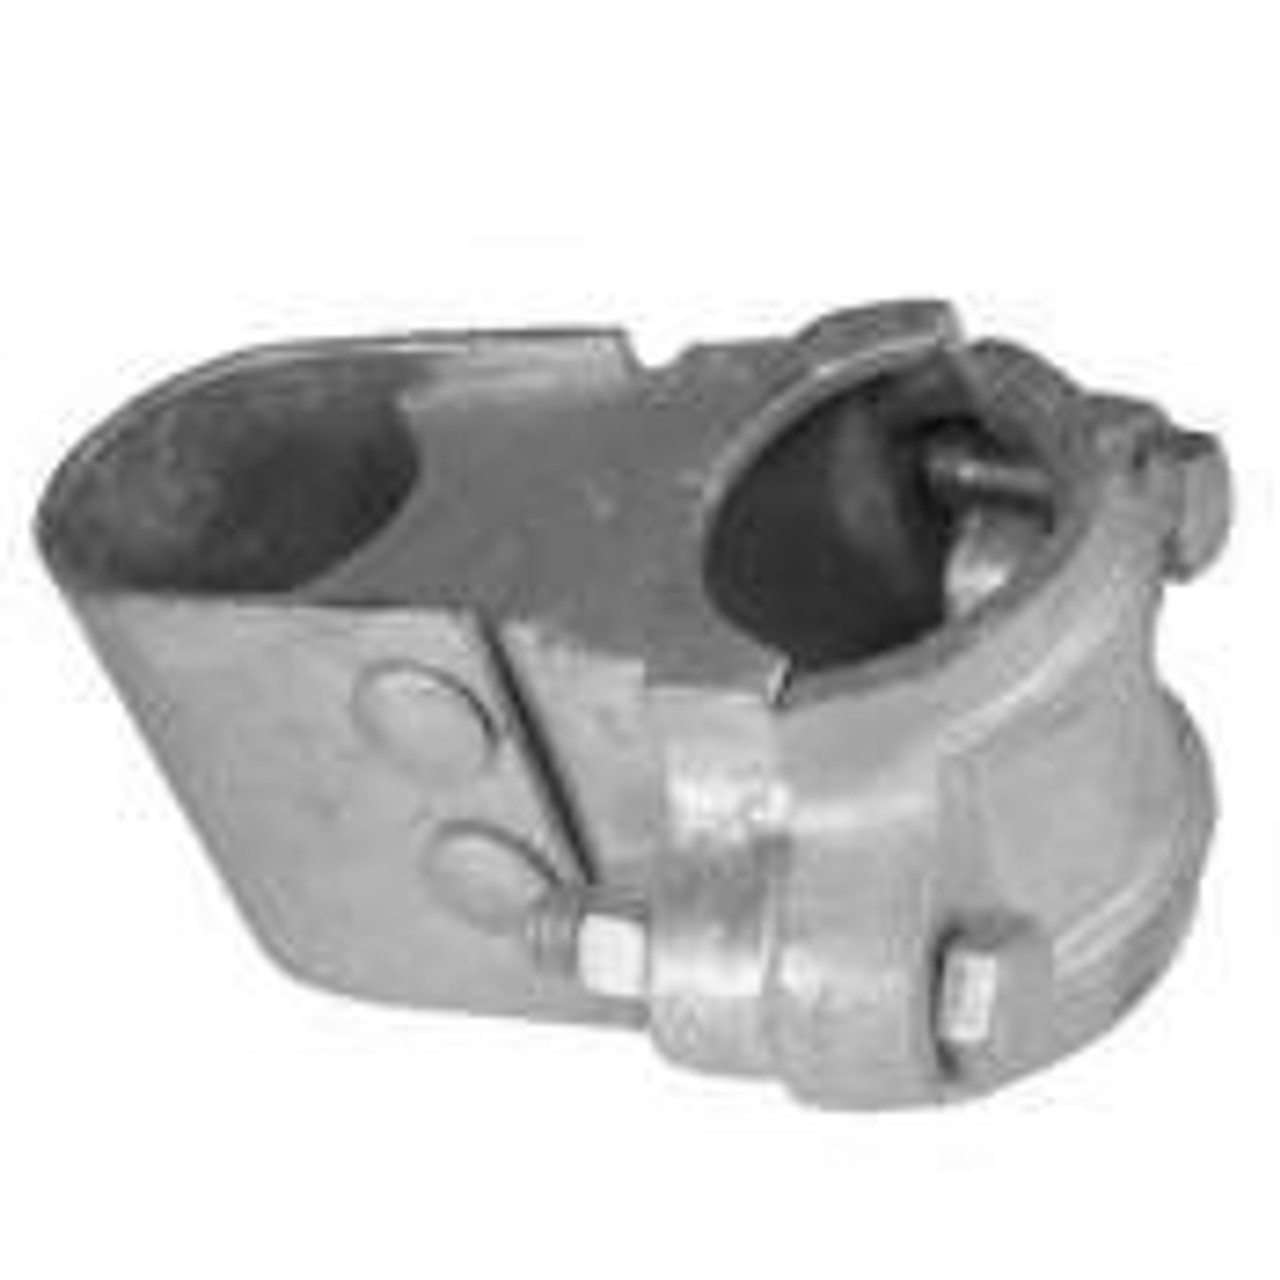 Malleable Steel Butt / Box Hinge for Commercial & Industrial Chain Link Gates, Galvanized - Multiple Sizes